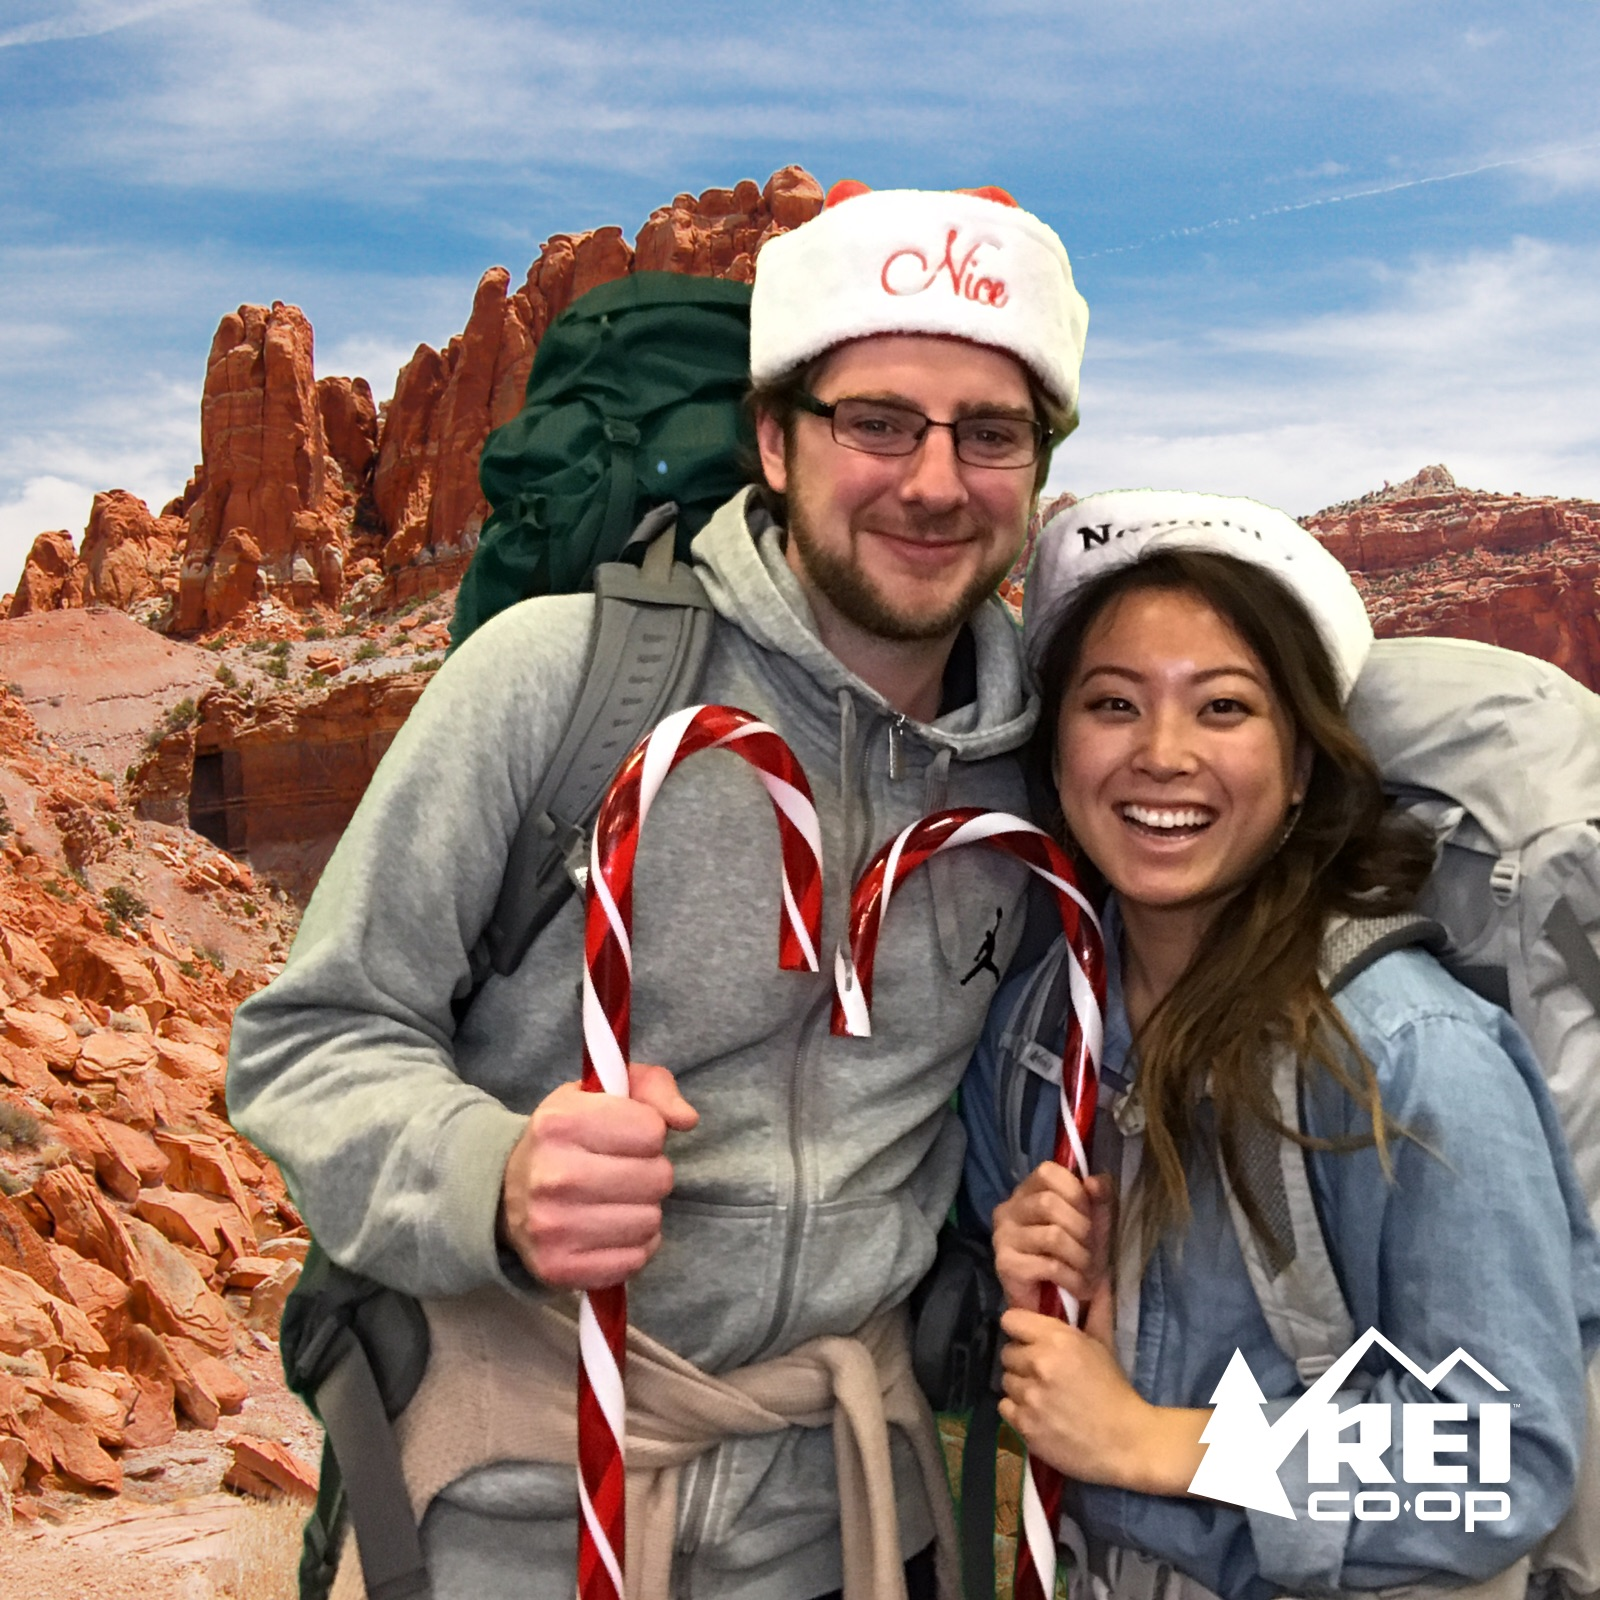 REI holiday activation #takeyourselfieonanadventure